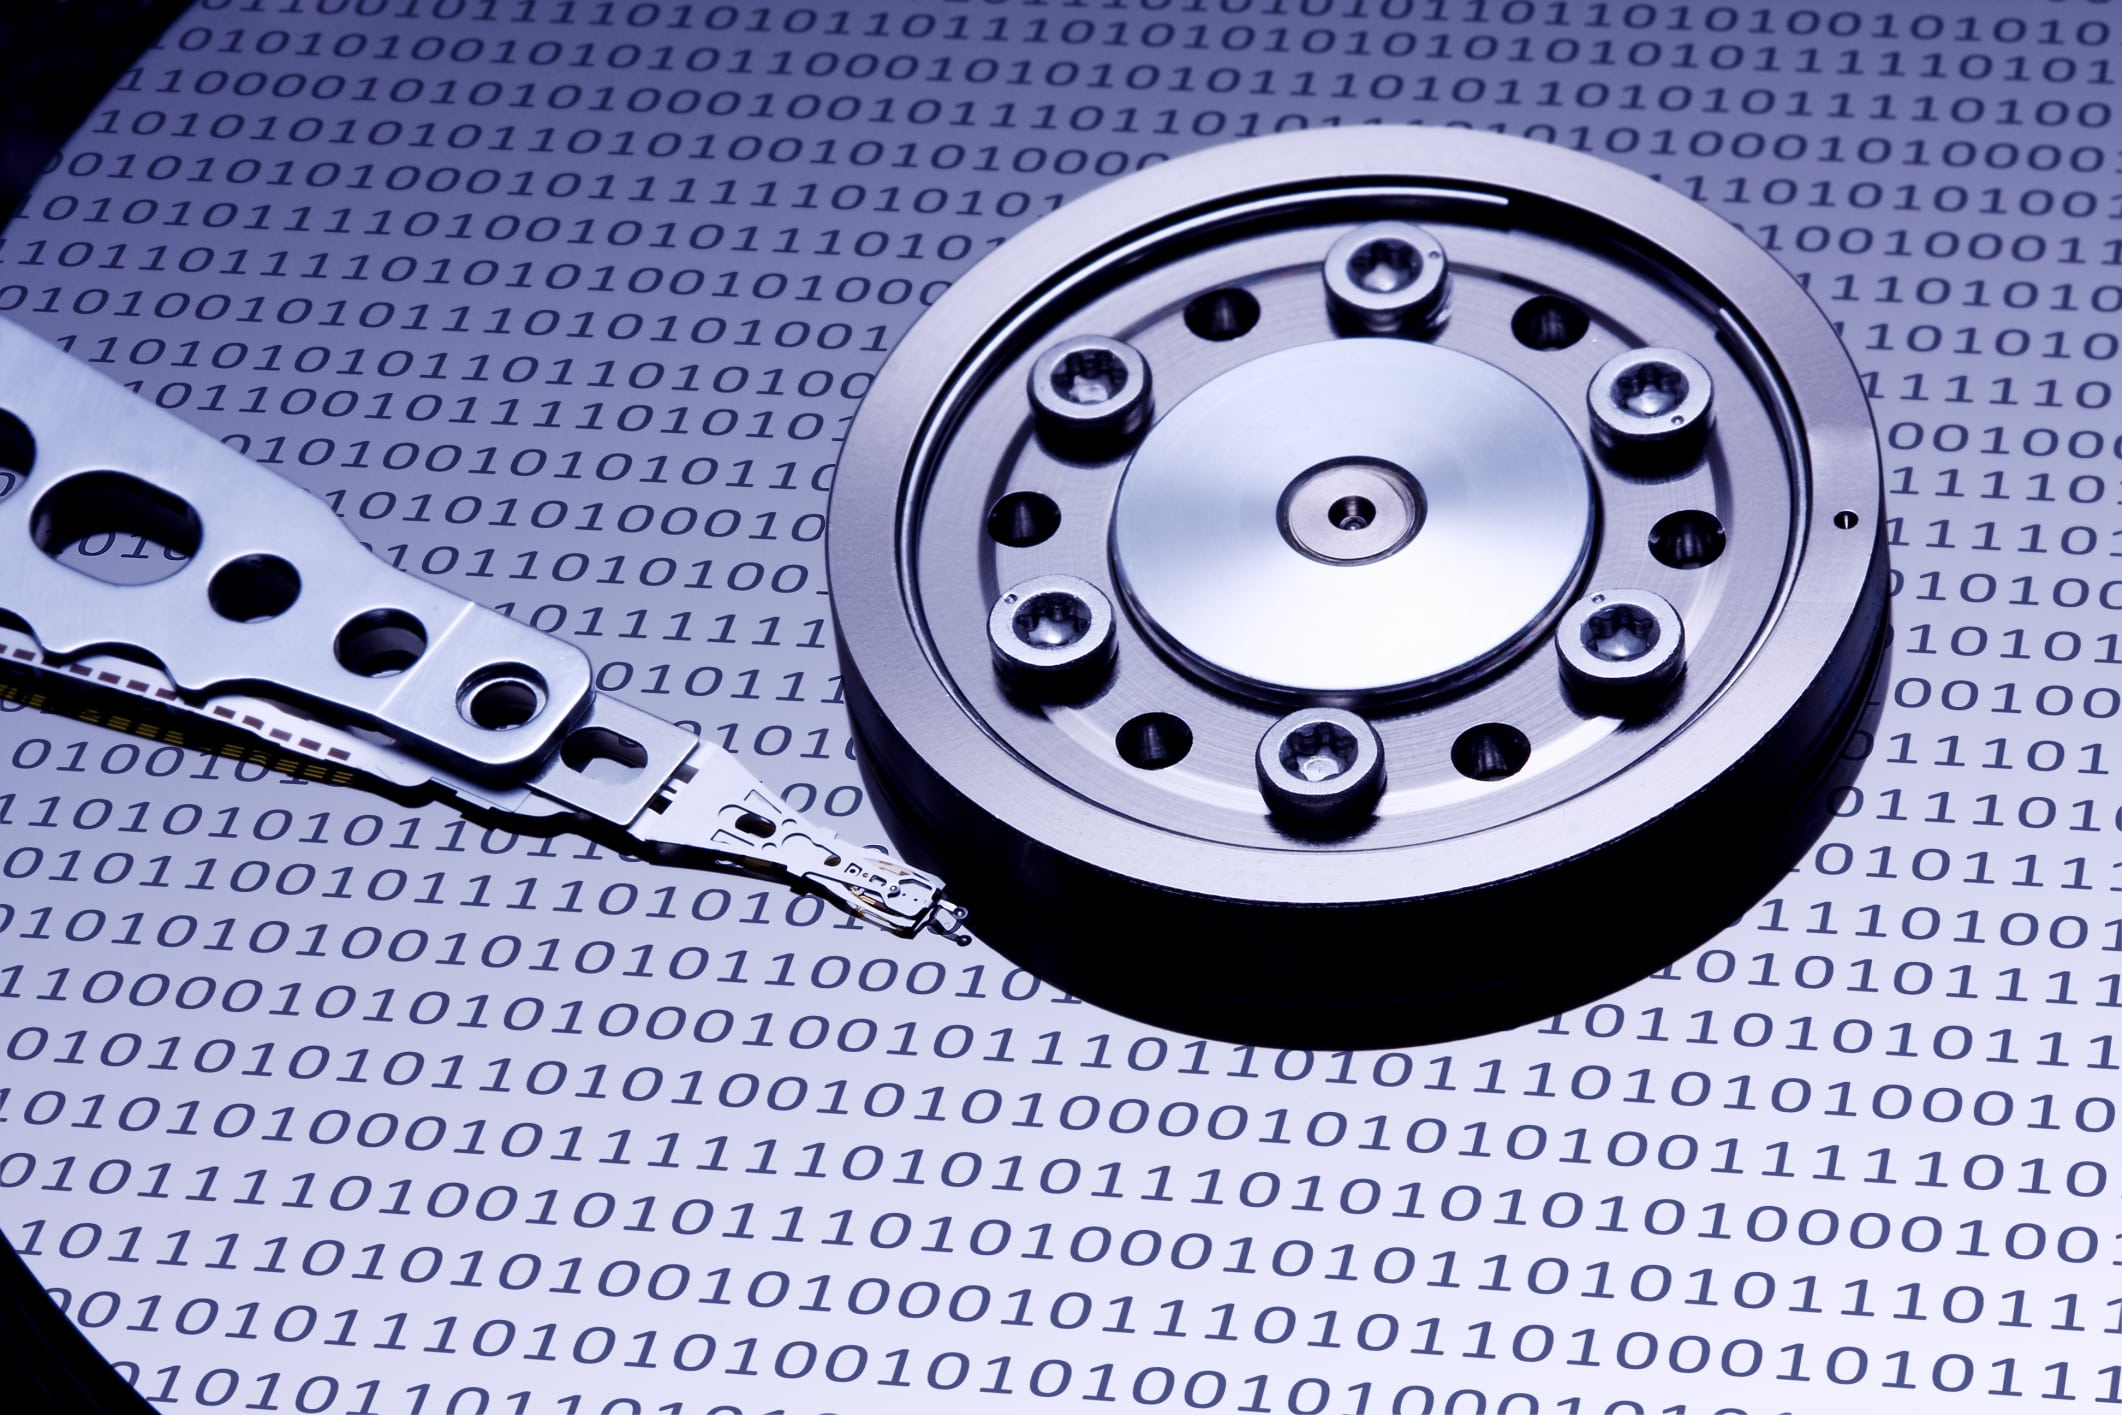 Data Recovery Service Brings Back Your Lost Files